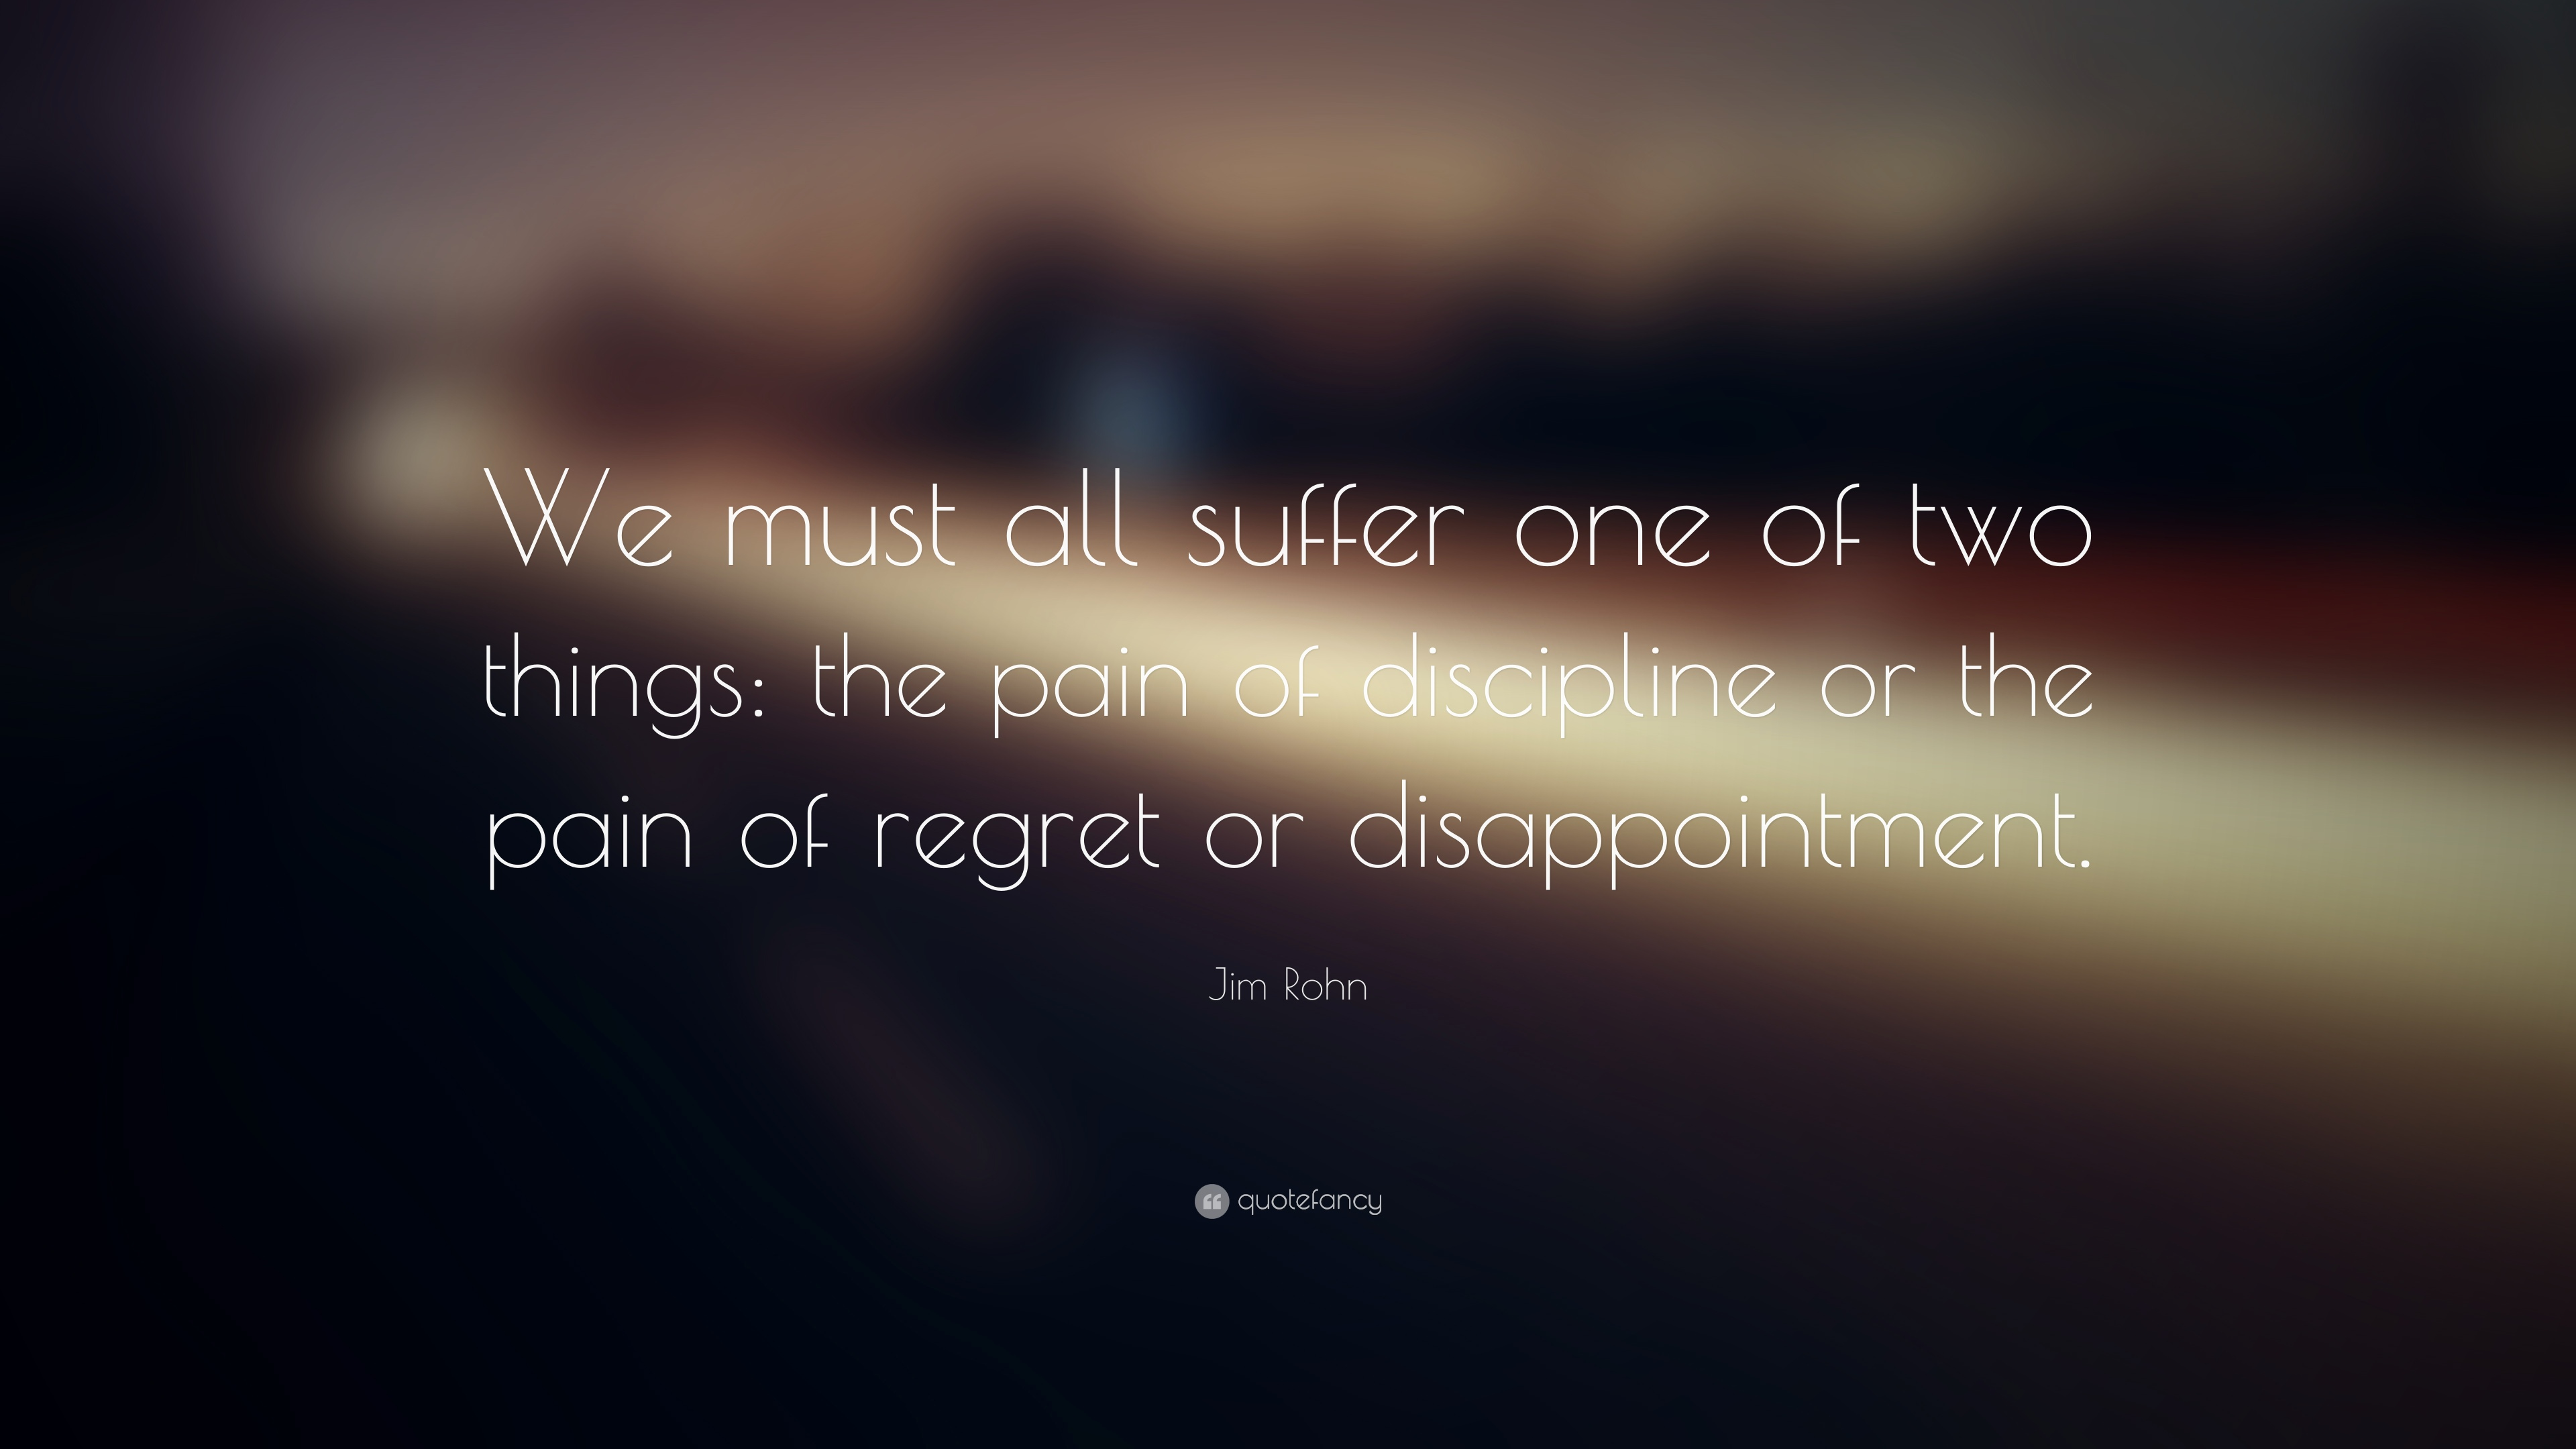 Pain Of Love Quotes Wallpaper : Jim Rohn Quote: ?We must all suffer one of two things: the pain of discipline or the pain of ...